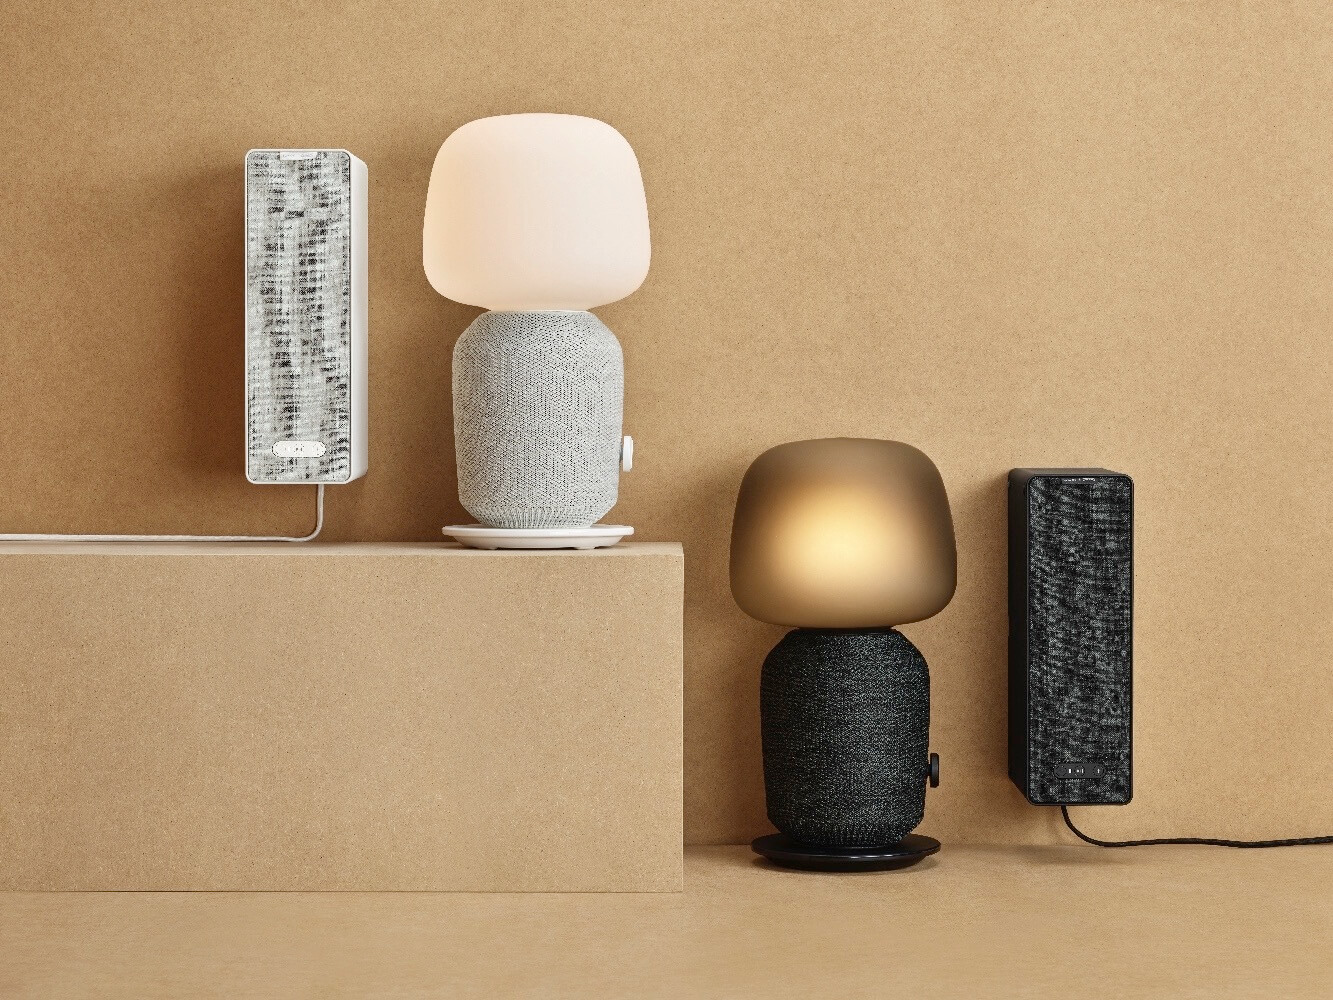 Sonos and Ikea announce speakers disguised as lamps